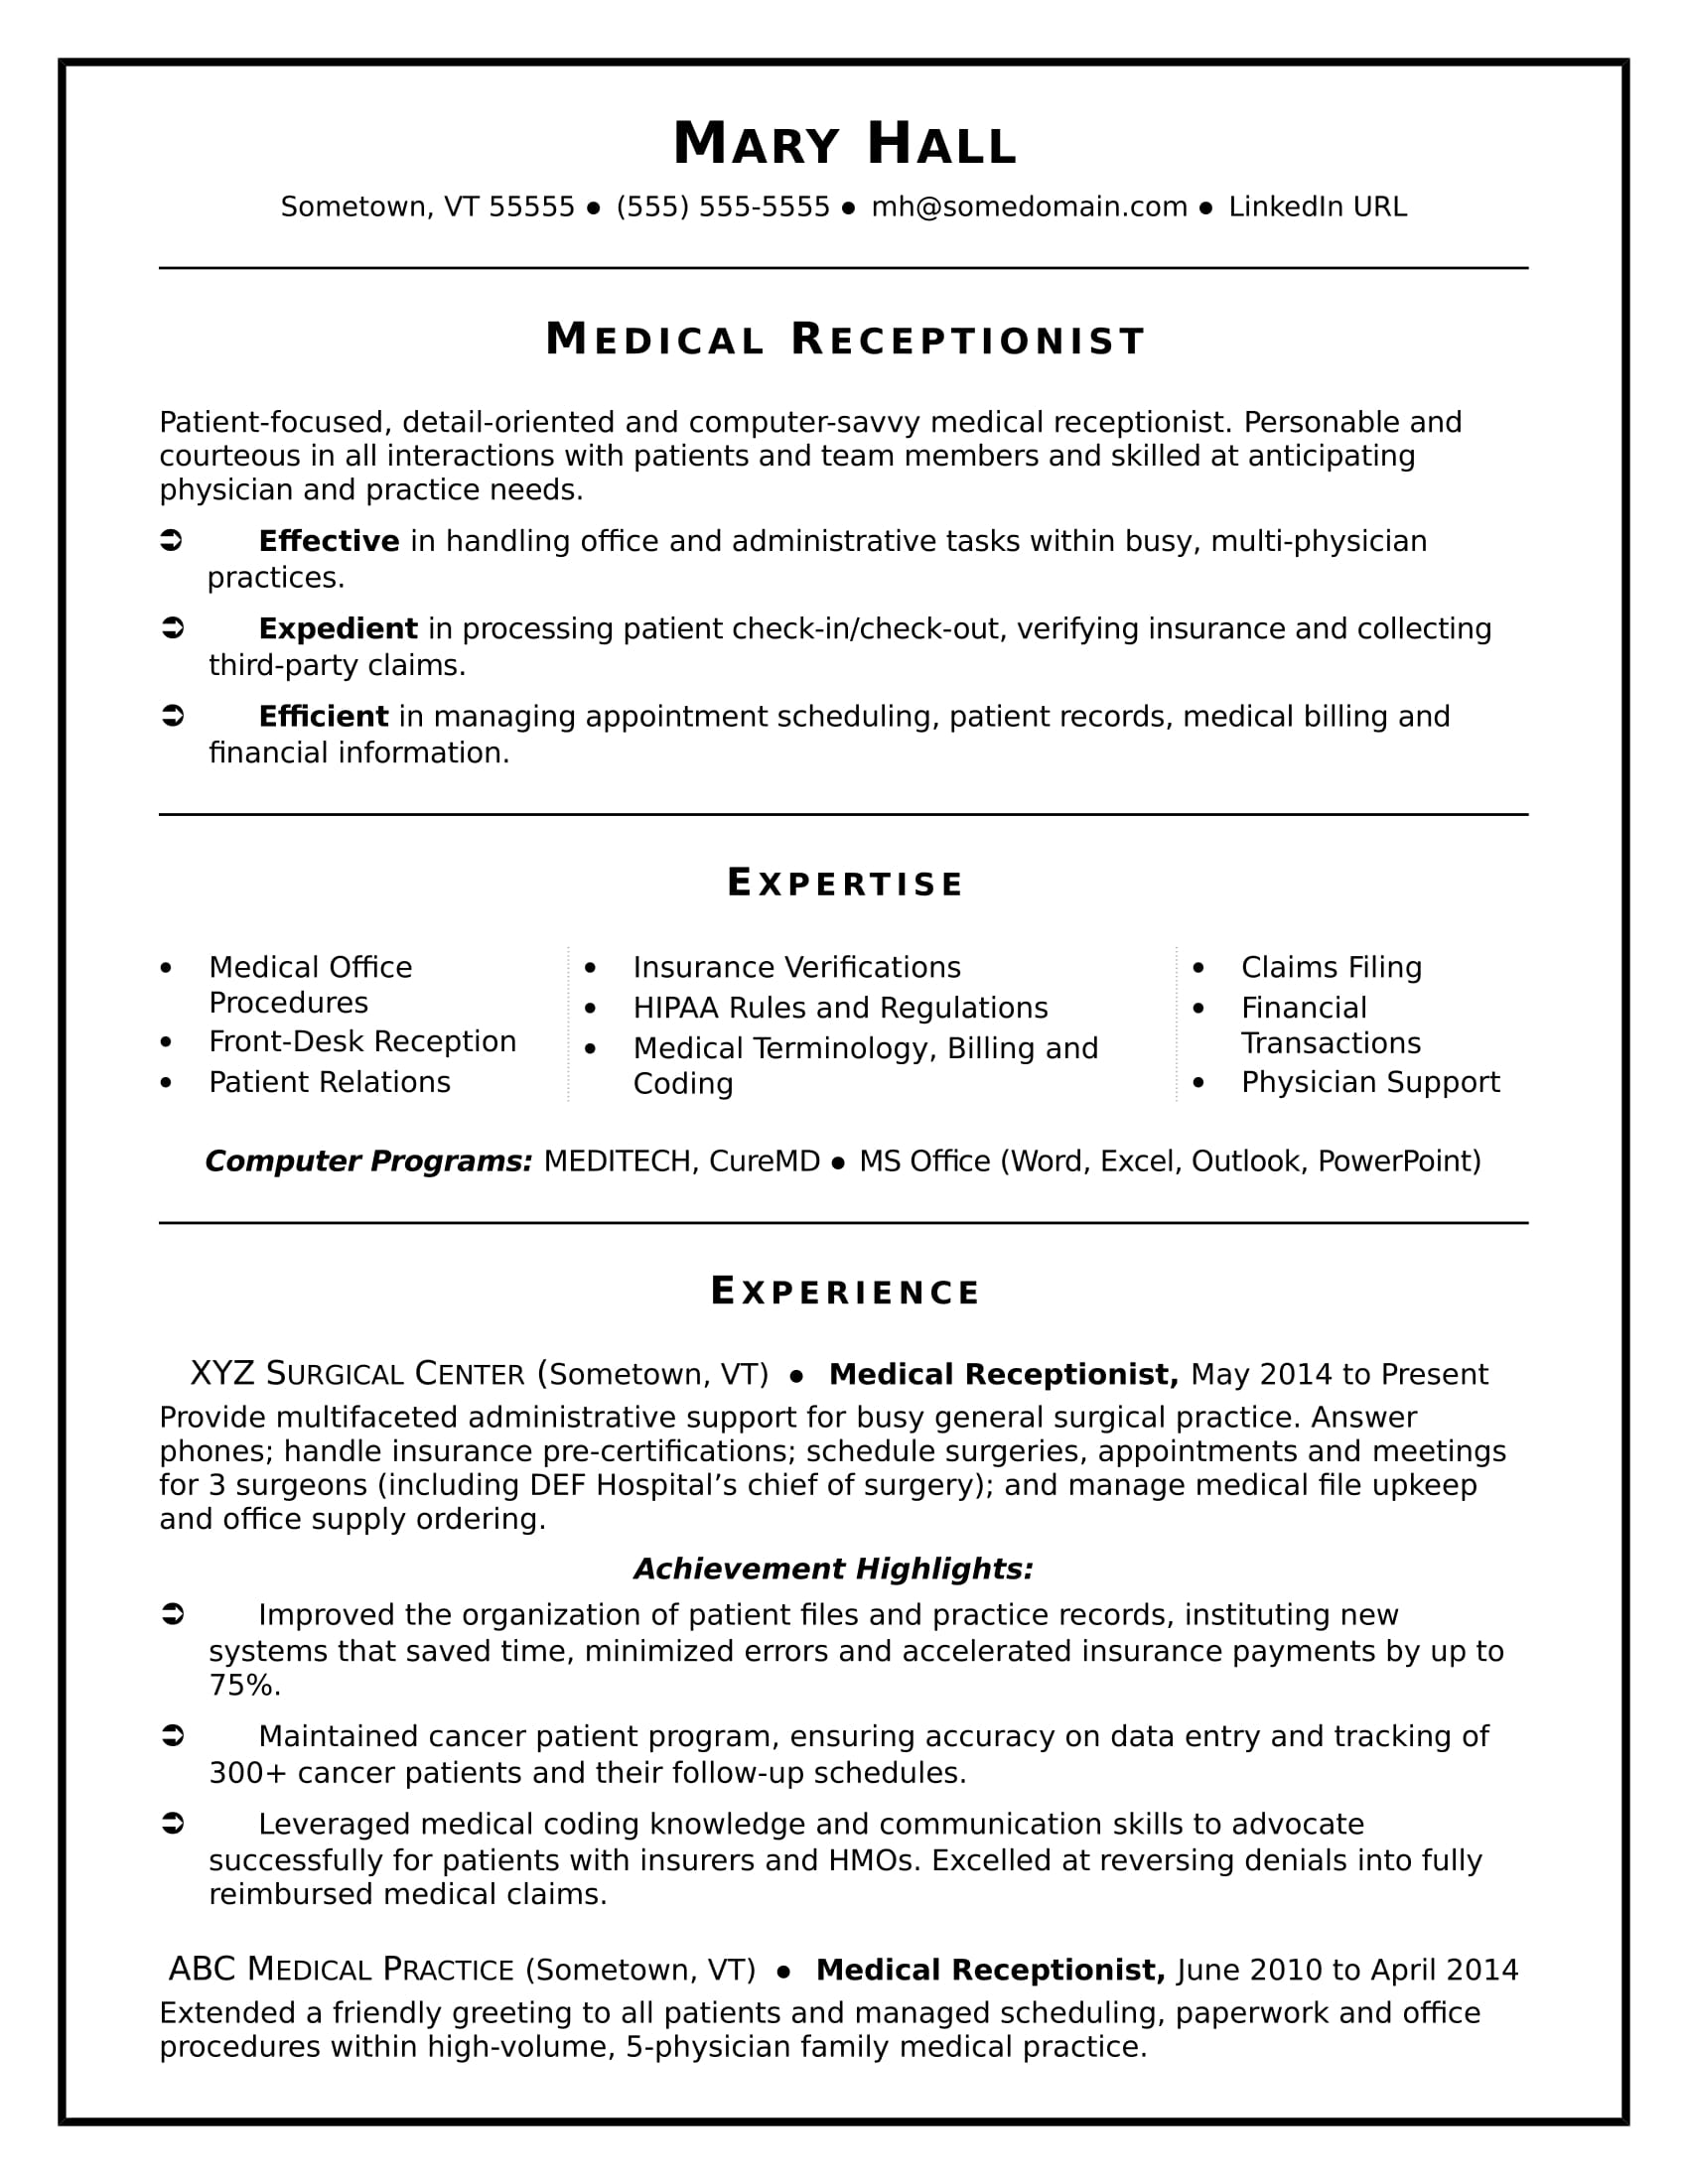 resume objective examples medical receptionist